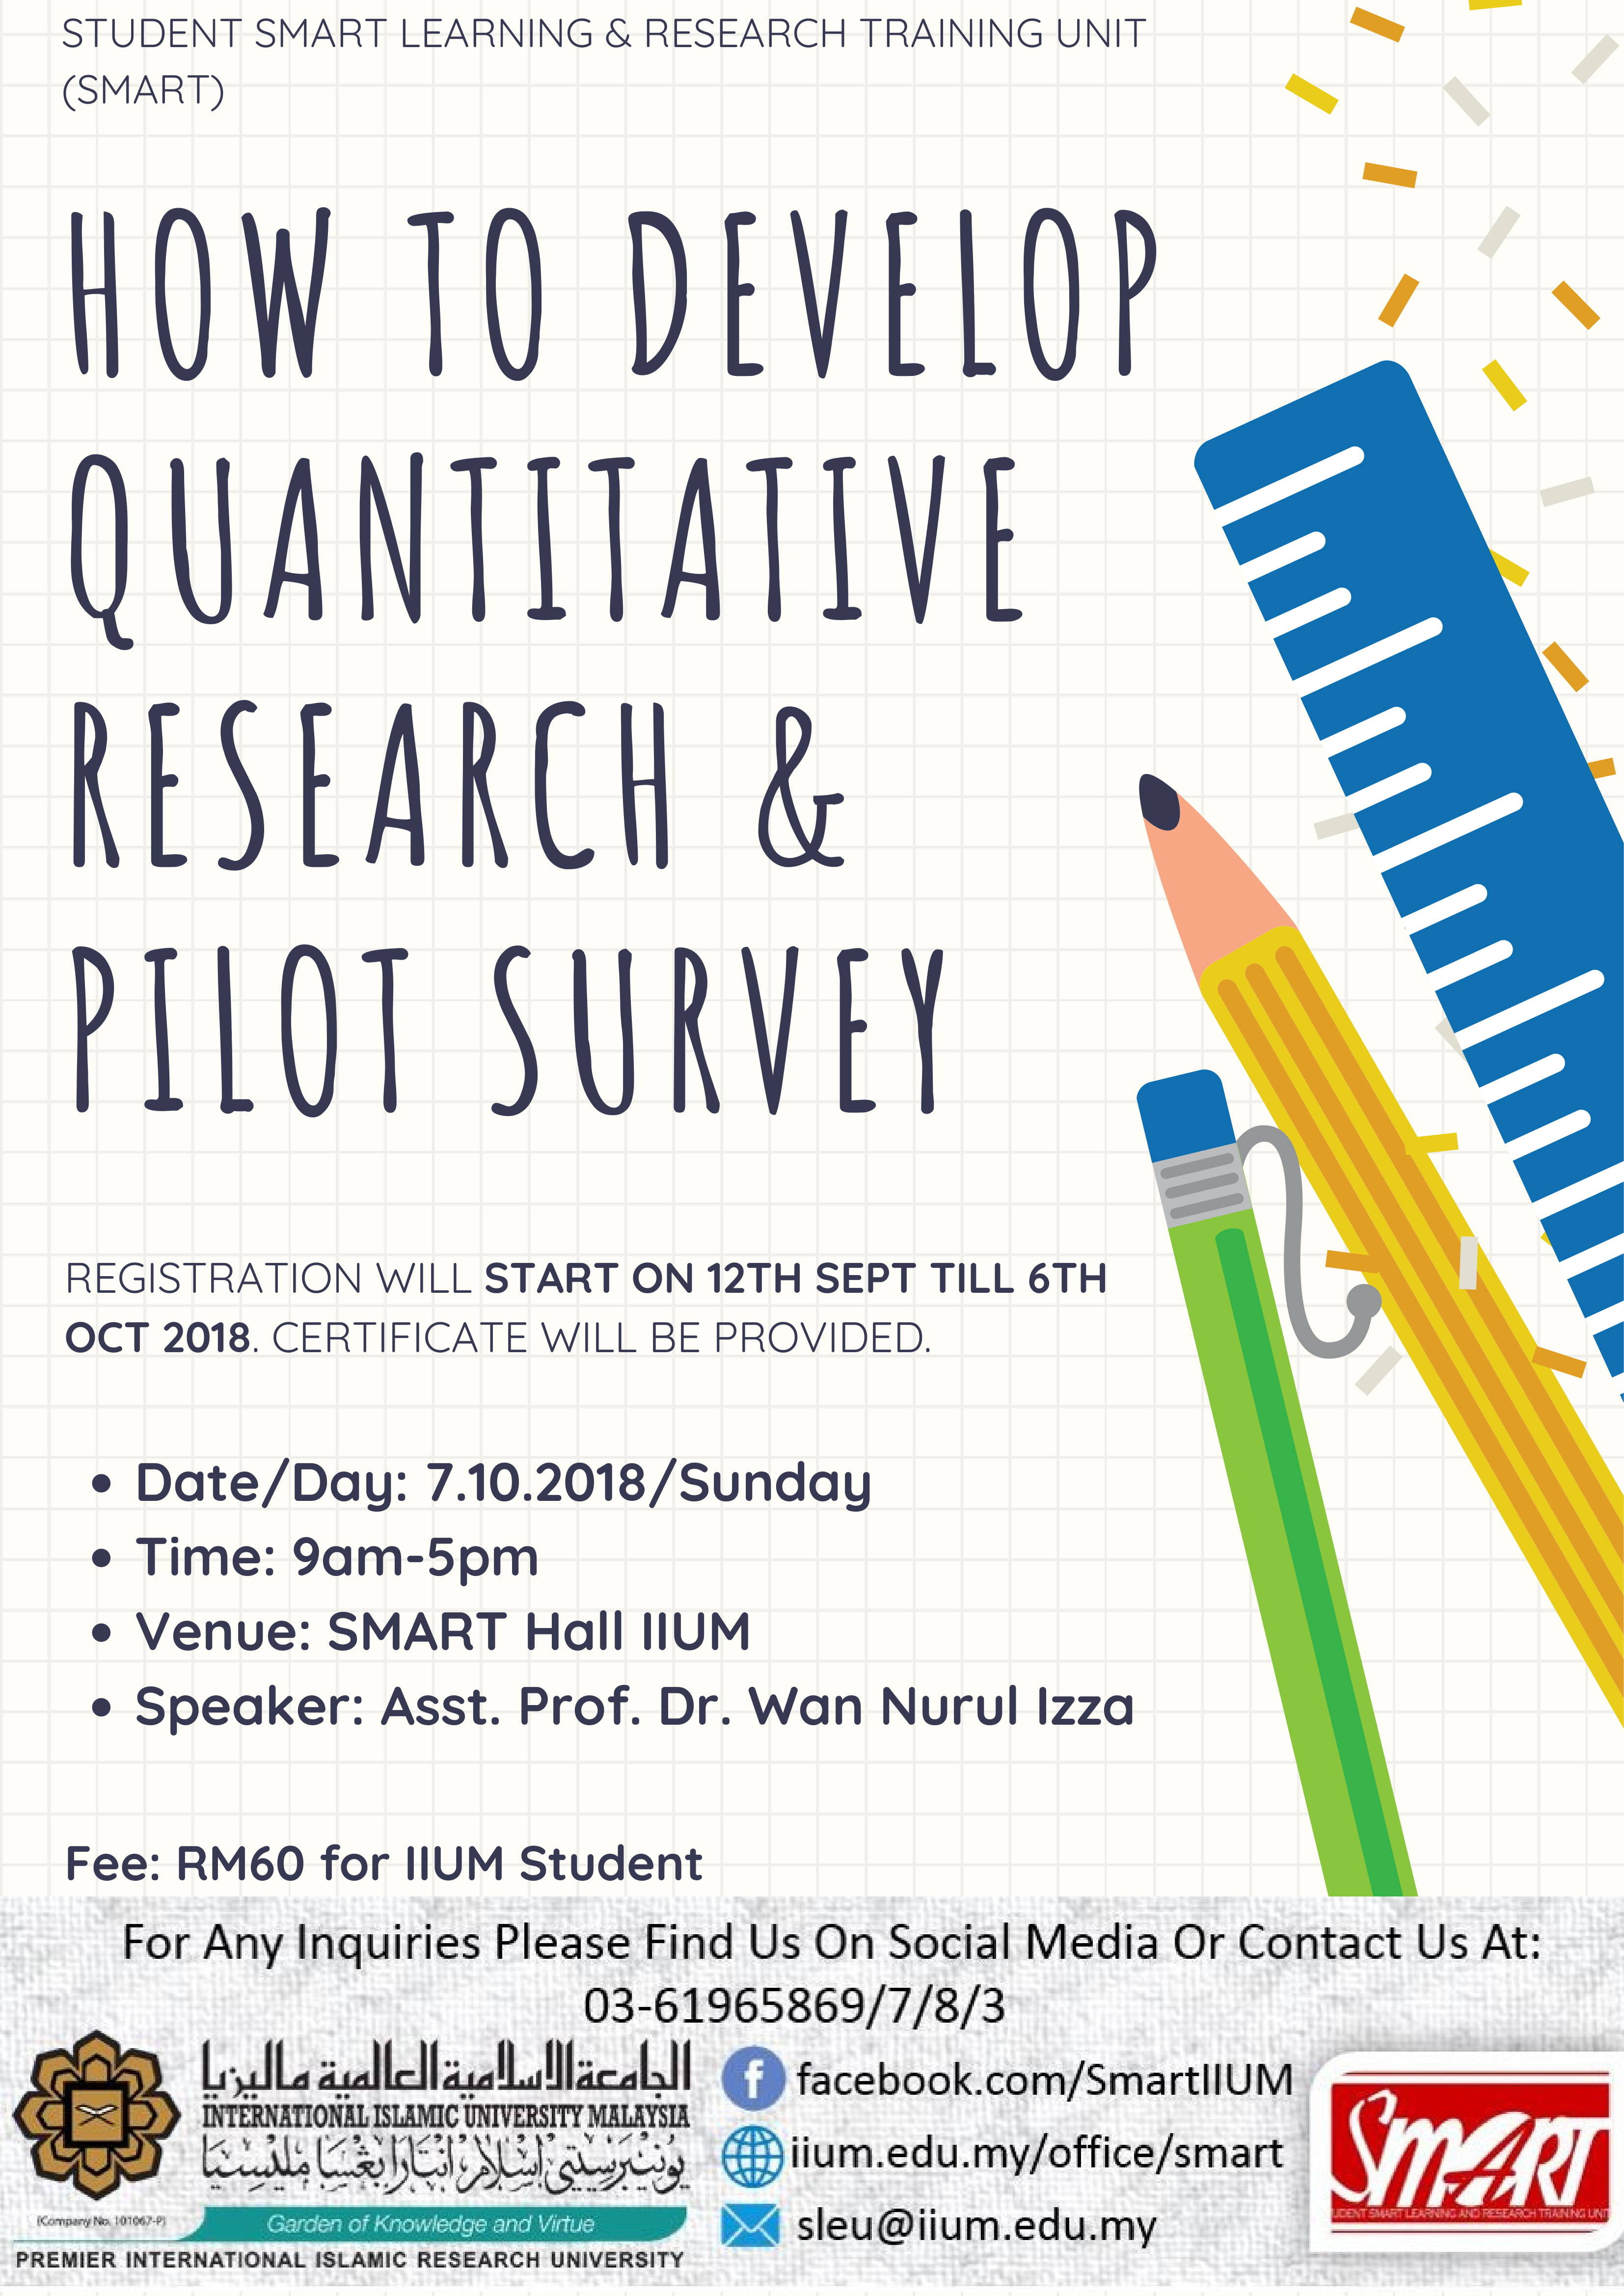 WORKSHOP : HOW TO DEVELOP QUANTITATIVE RESEARCH & PILOT SURVEY